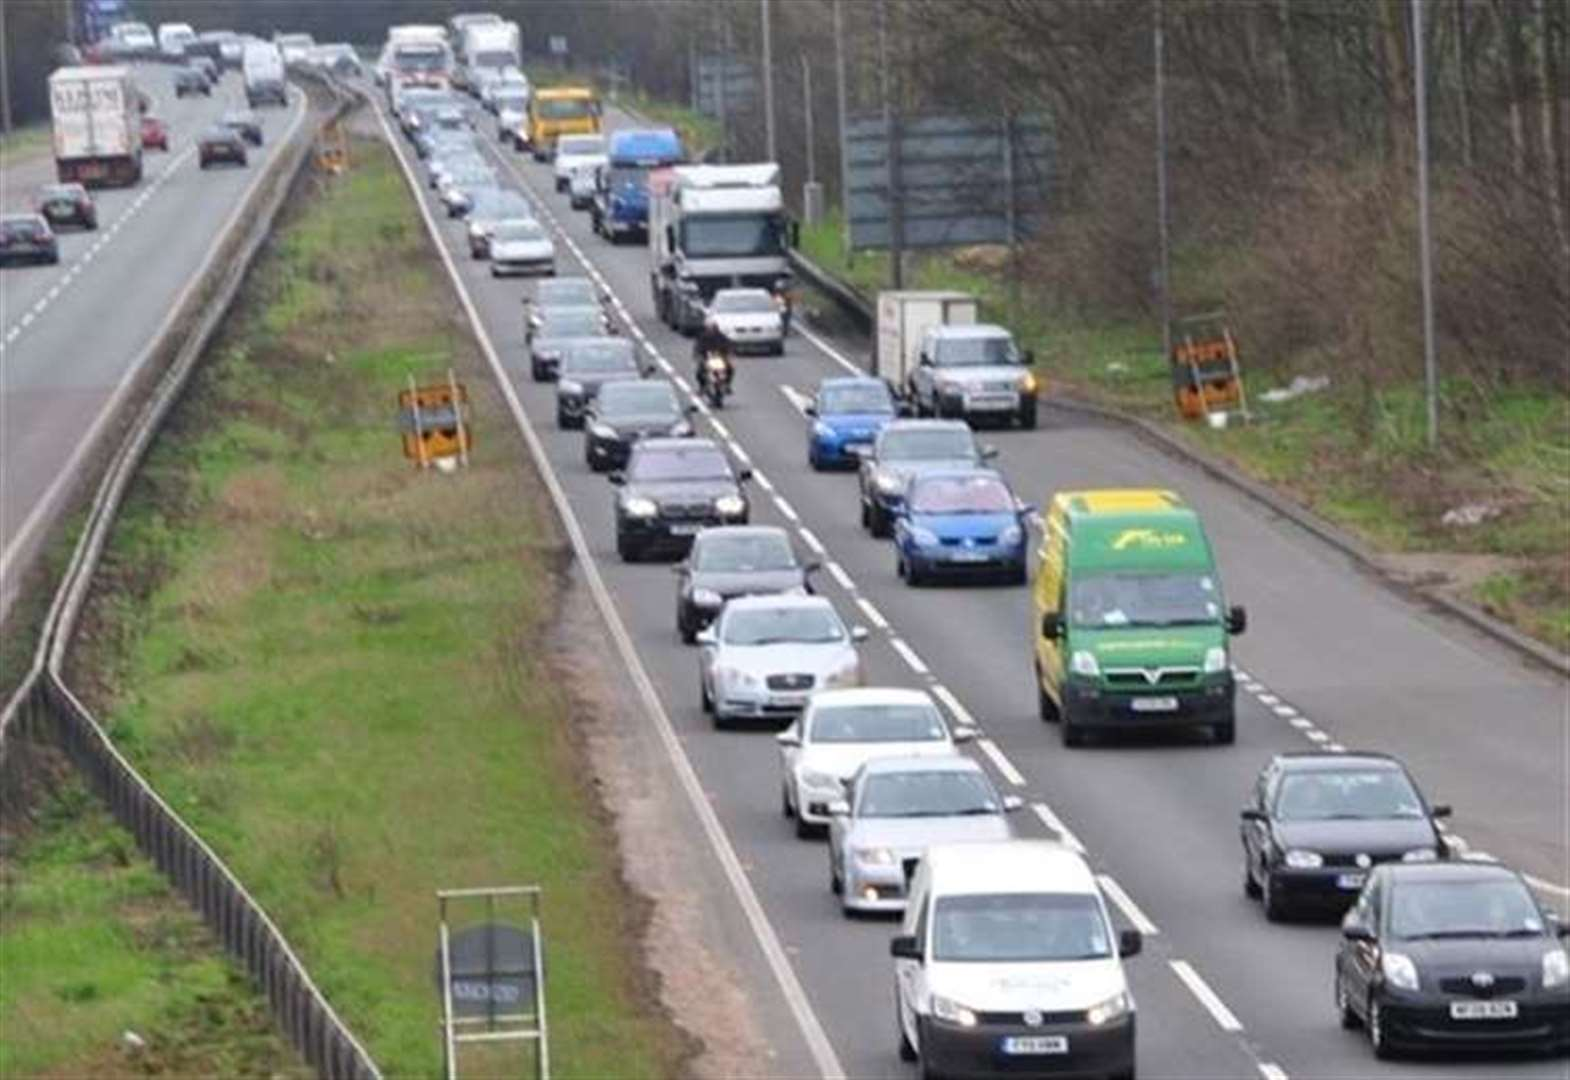 A1 blocked after crash on southbound carriageway near Grantham